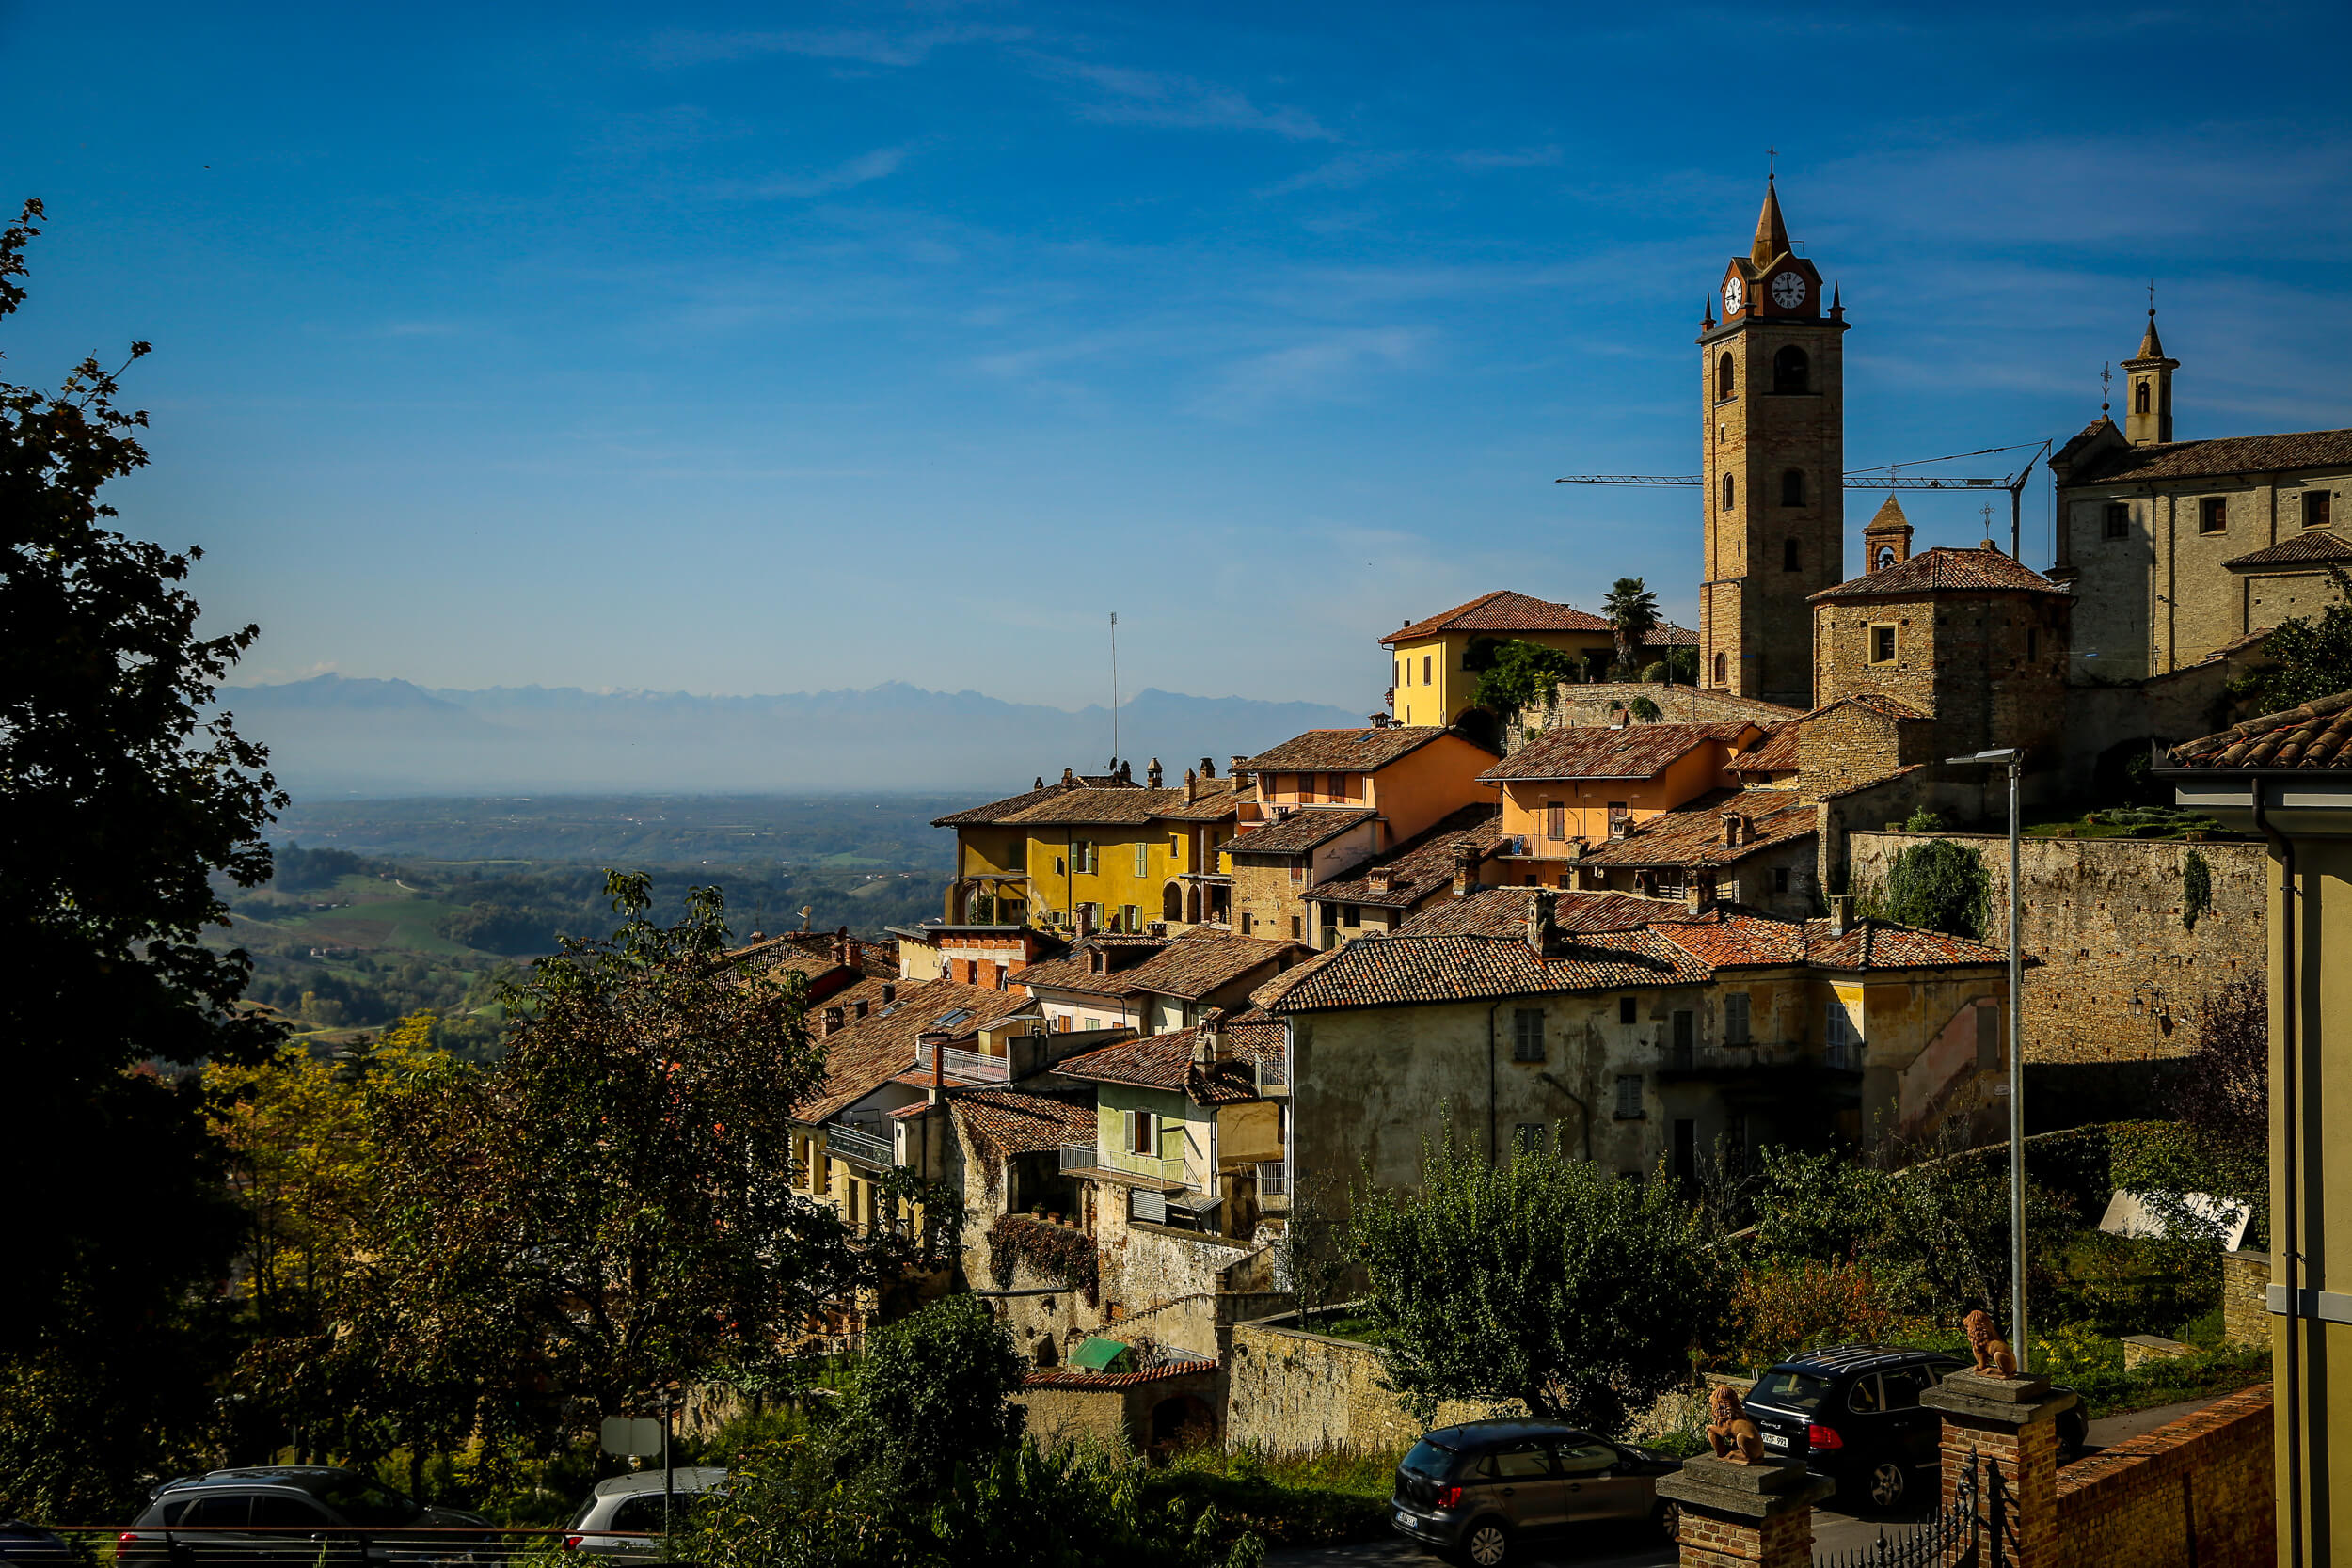 Monforte valley view